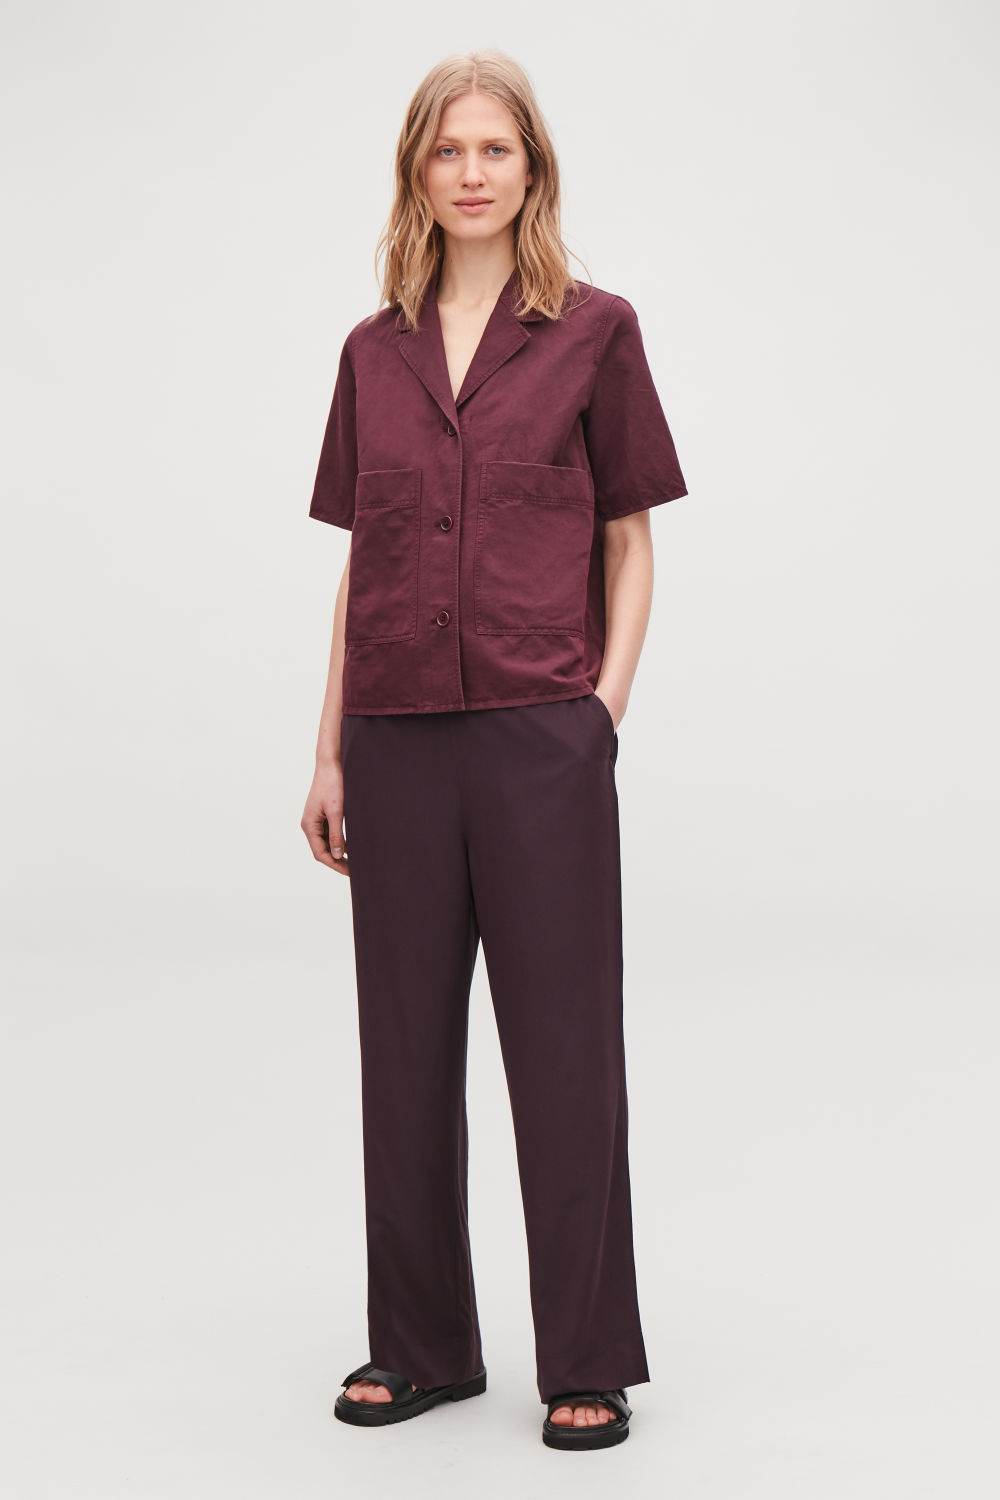 a9ef2c94bab RELAXED SILK TROUSERS RELAXED SILK TROUSERS